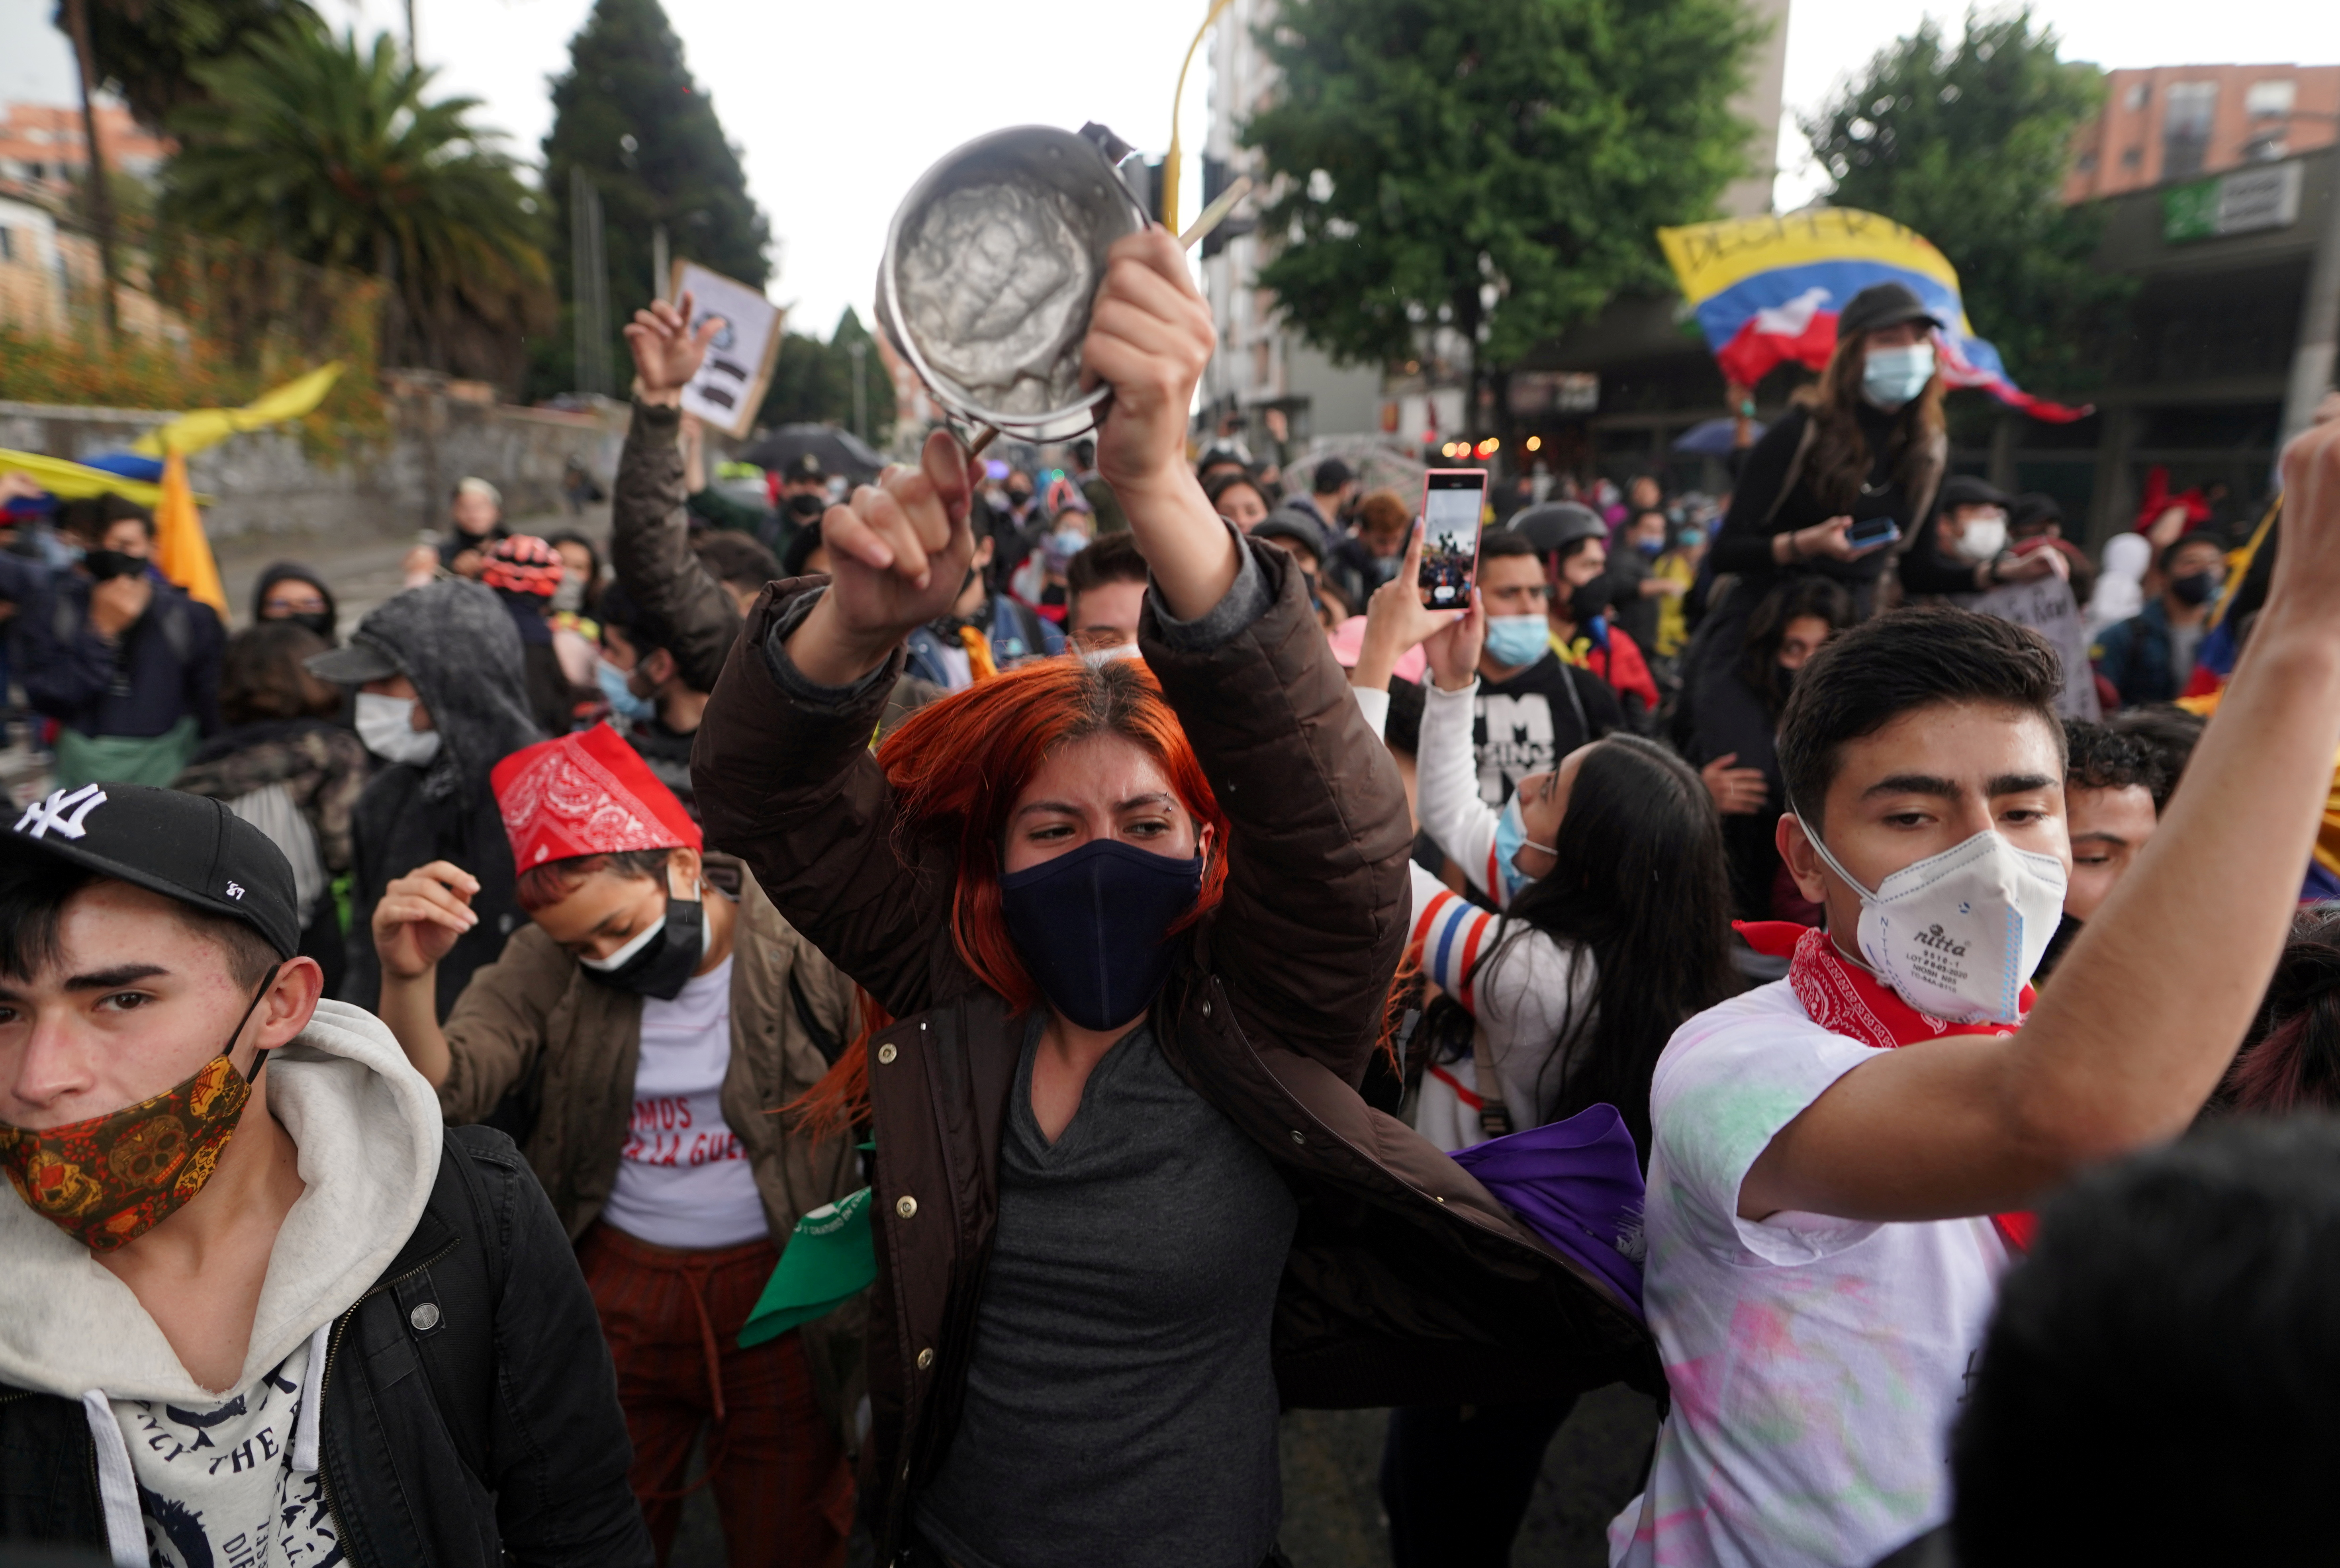 Demonstrators participate in a protest against poverty and police violence, in Bogota, Colombia May 4, 2021. REUTERS/Nathalia Angarita